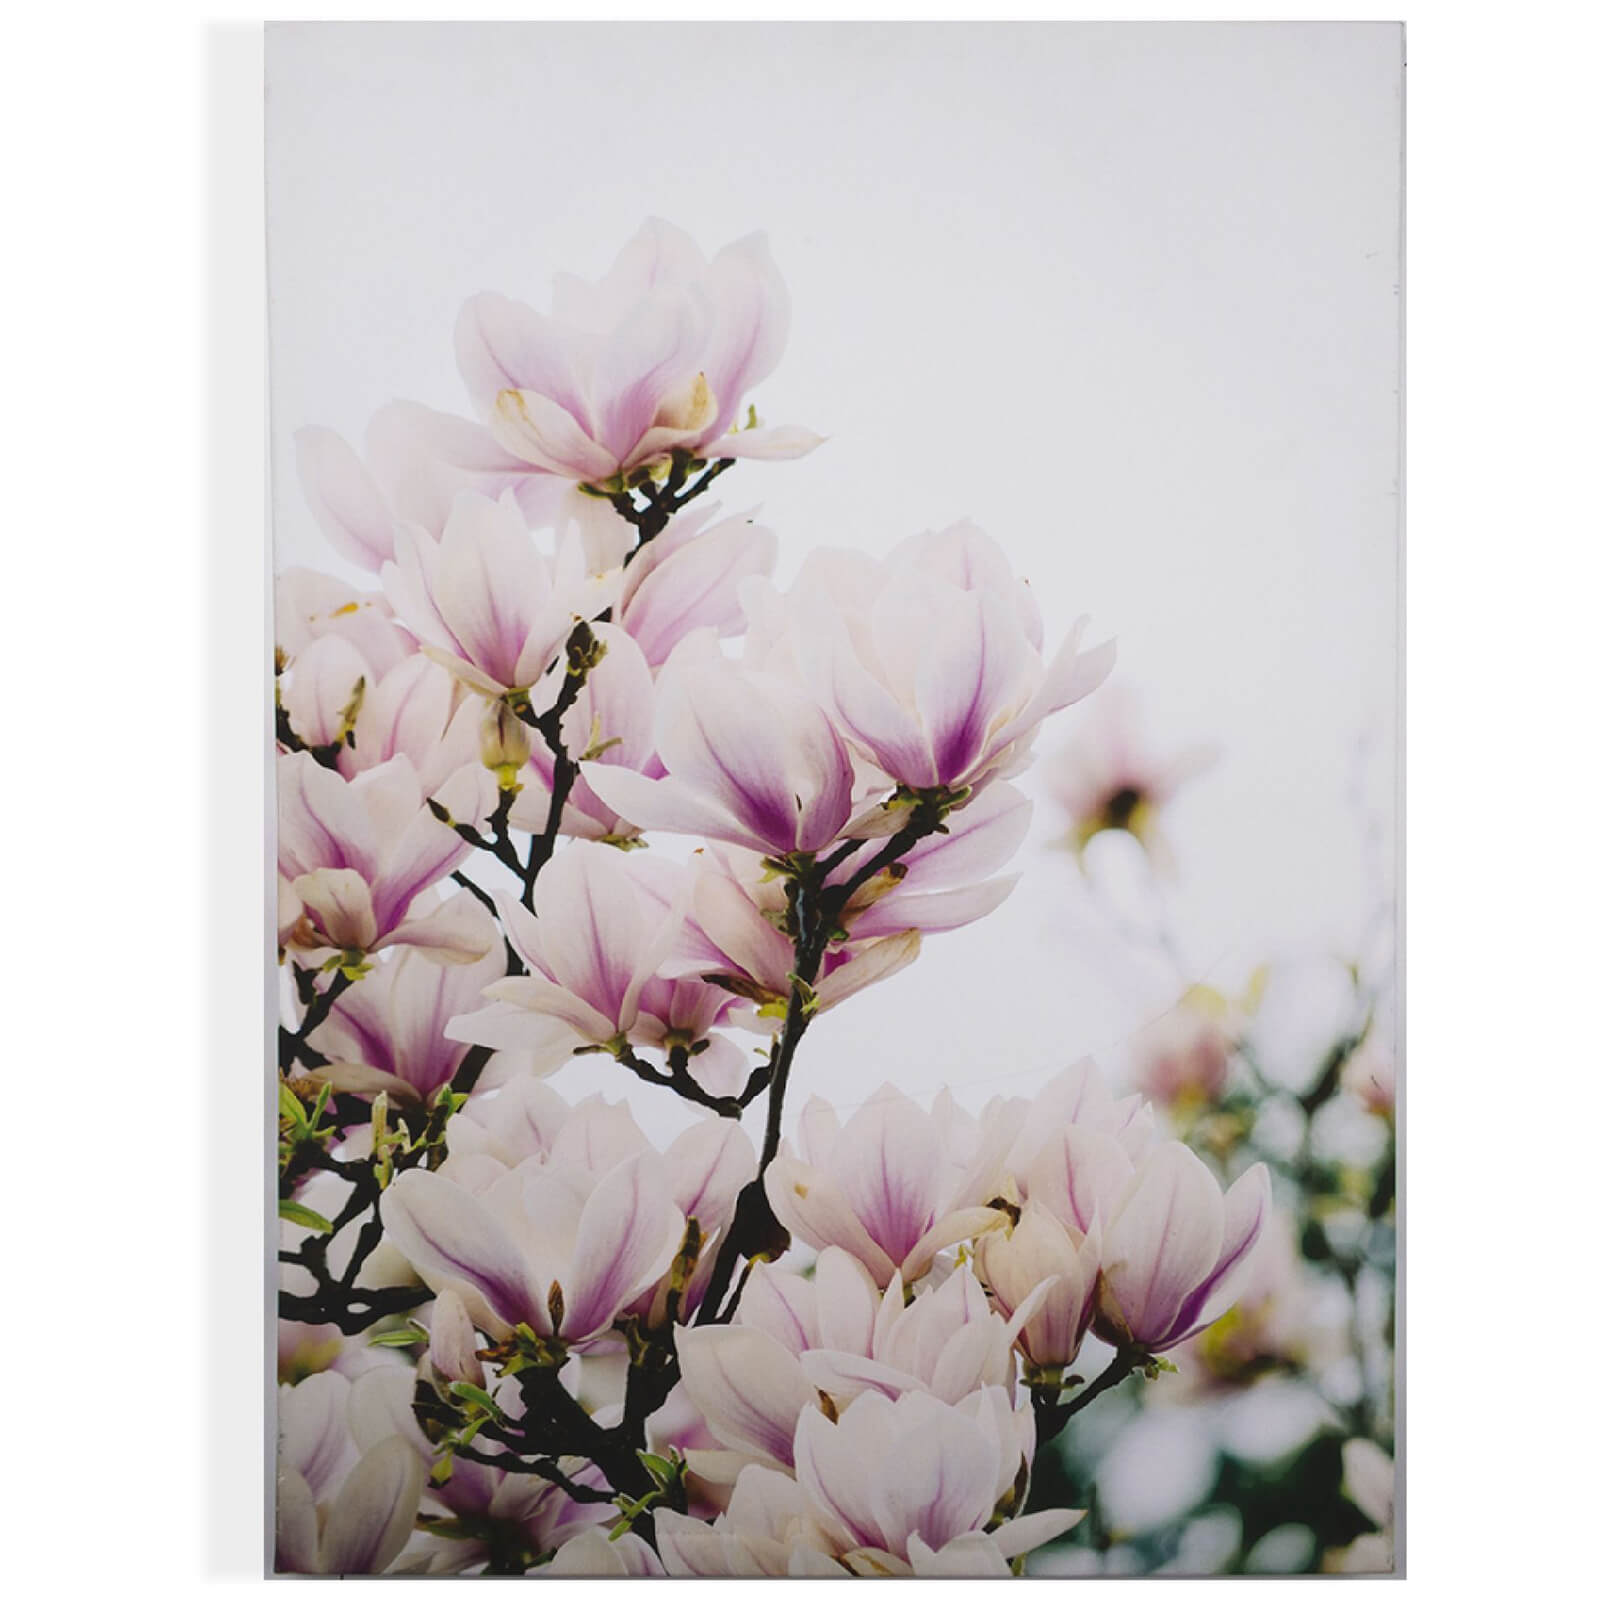 Art for the Home Magnolia Blossoms Printed Canvas